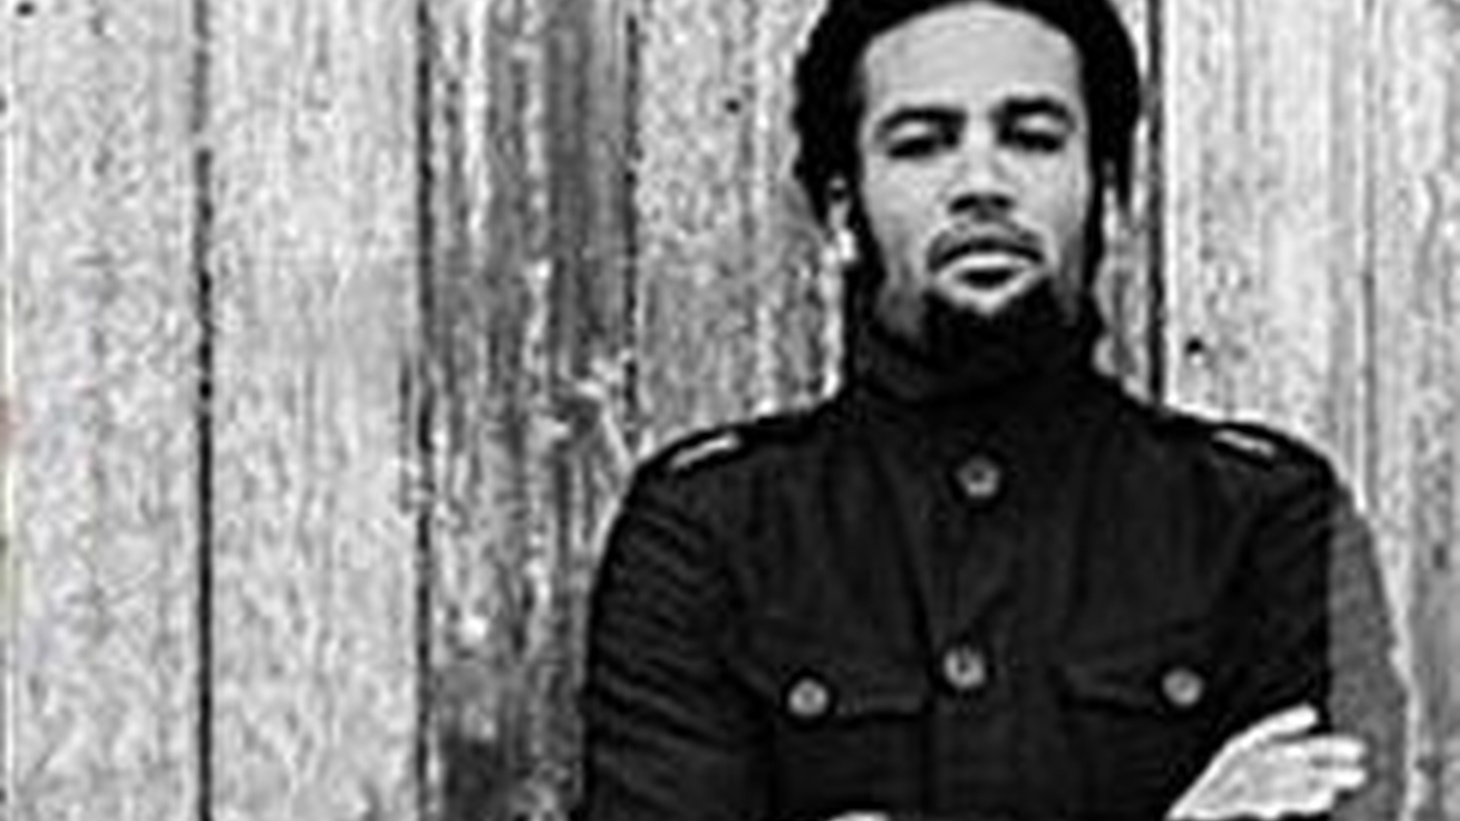 Ben Harper and his band perform an uplifting set of great music on Morning Becomes Eclectic.